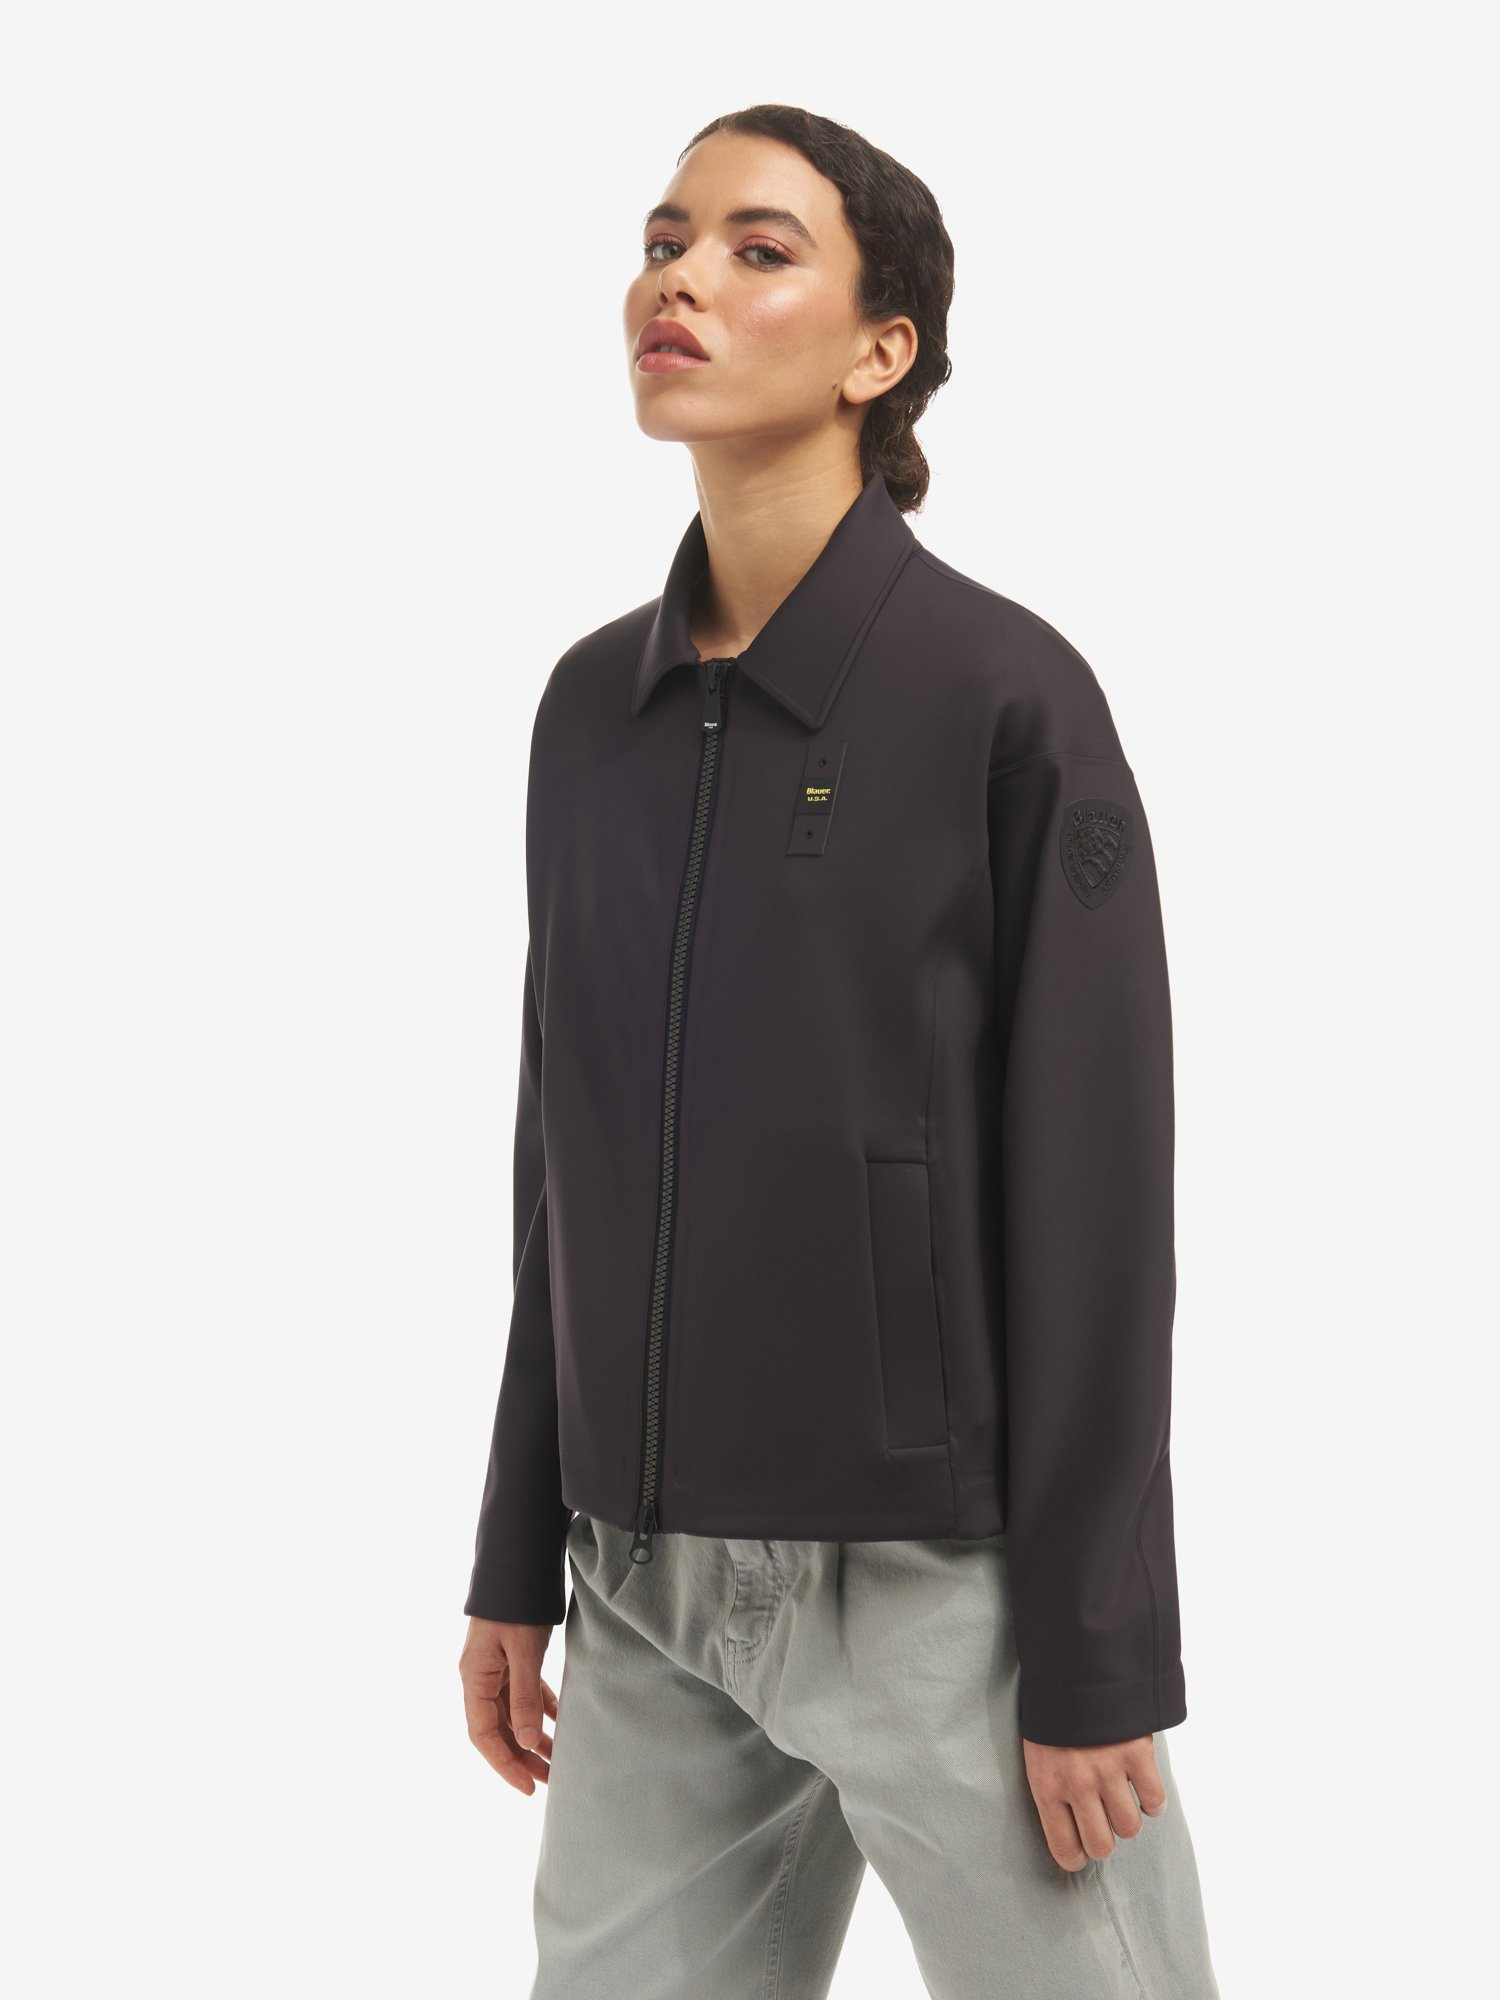 CRYSTAL UNLINED TAPED JACKET - Blauer